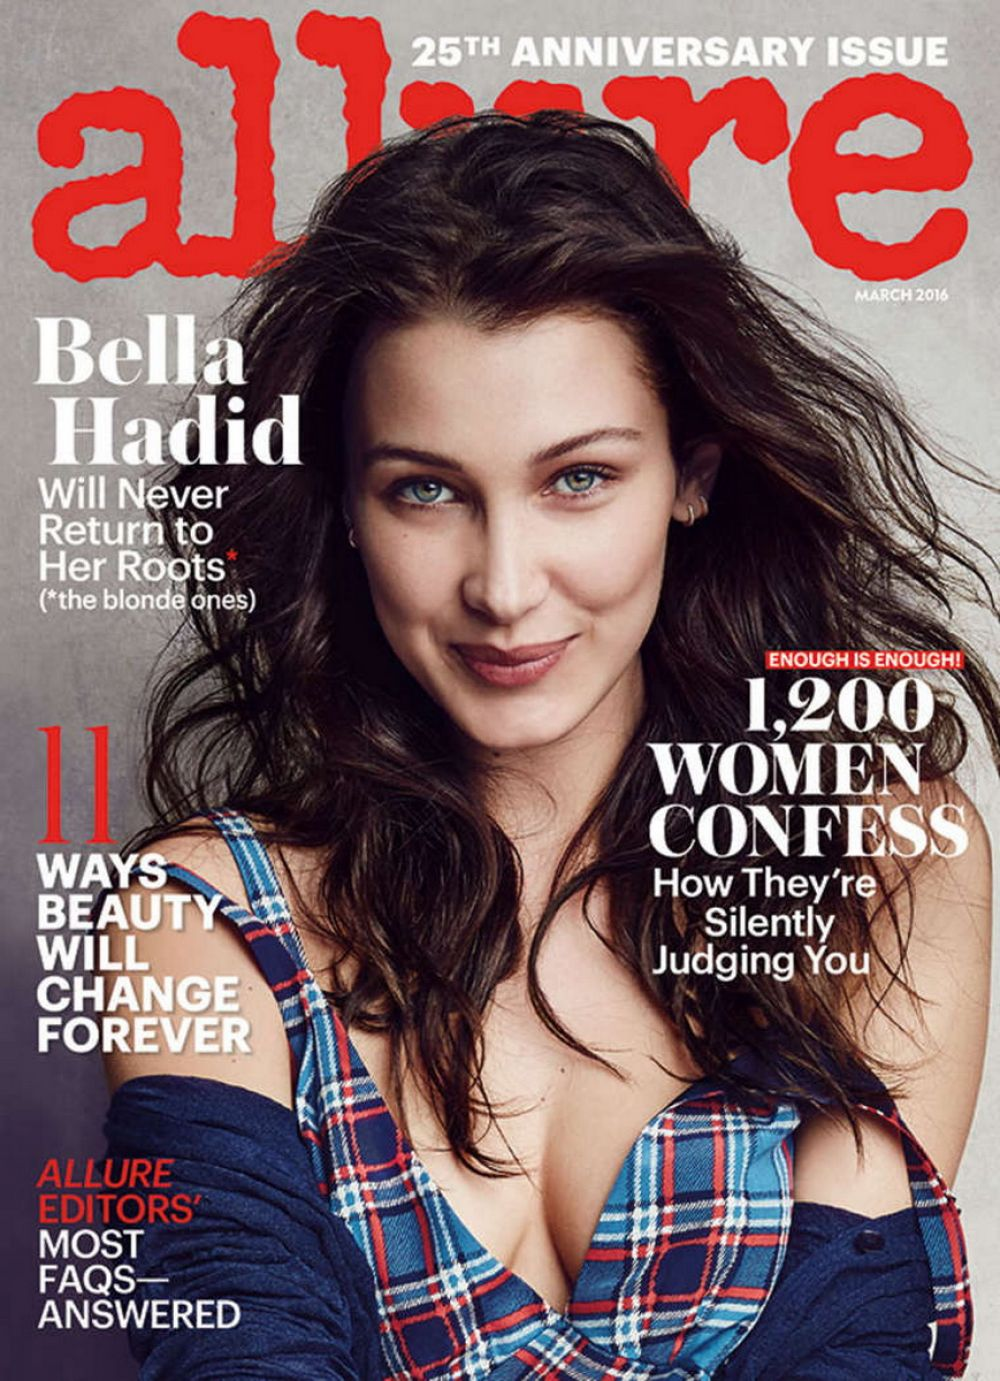 BELLA HADID in Allure Magazine, March 2016 Issue